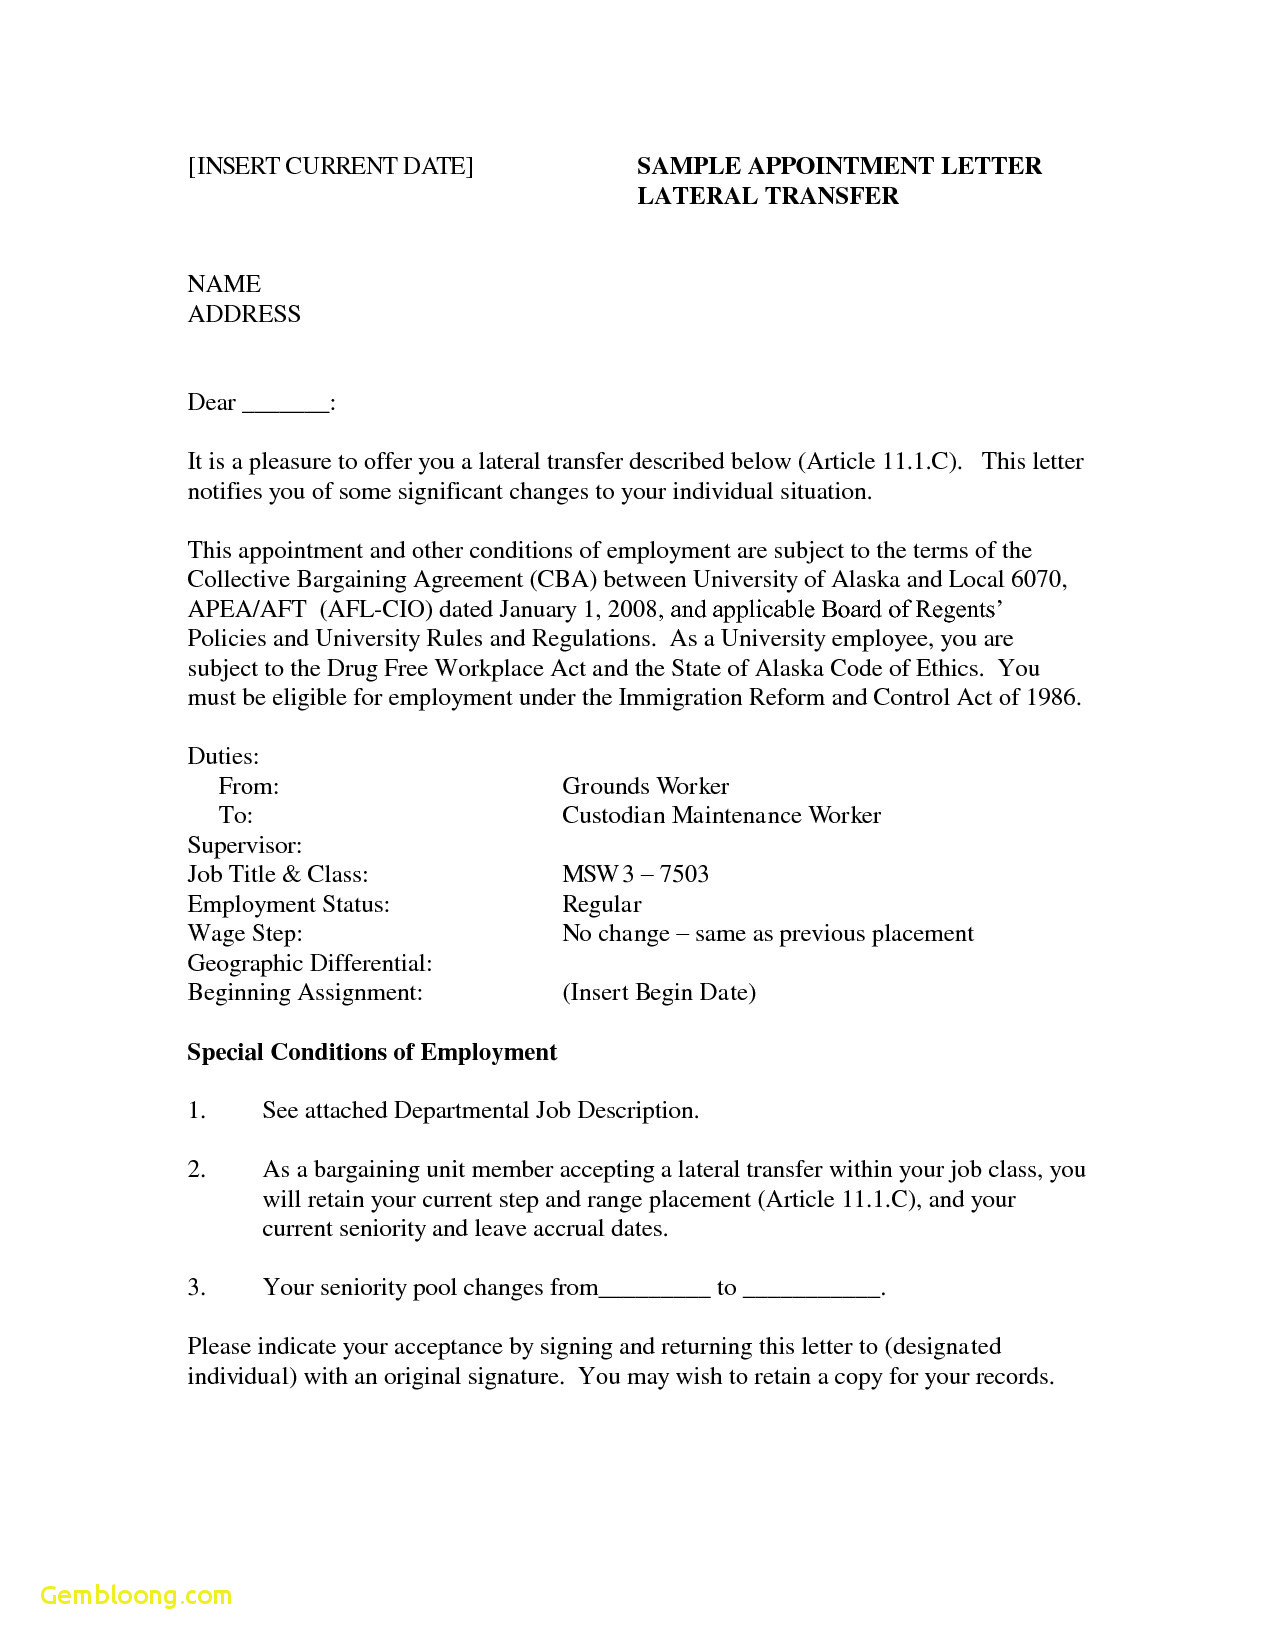 Customer Service Cover Letter Template Word